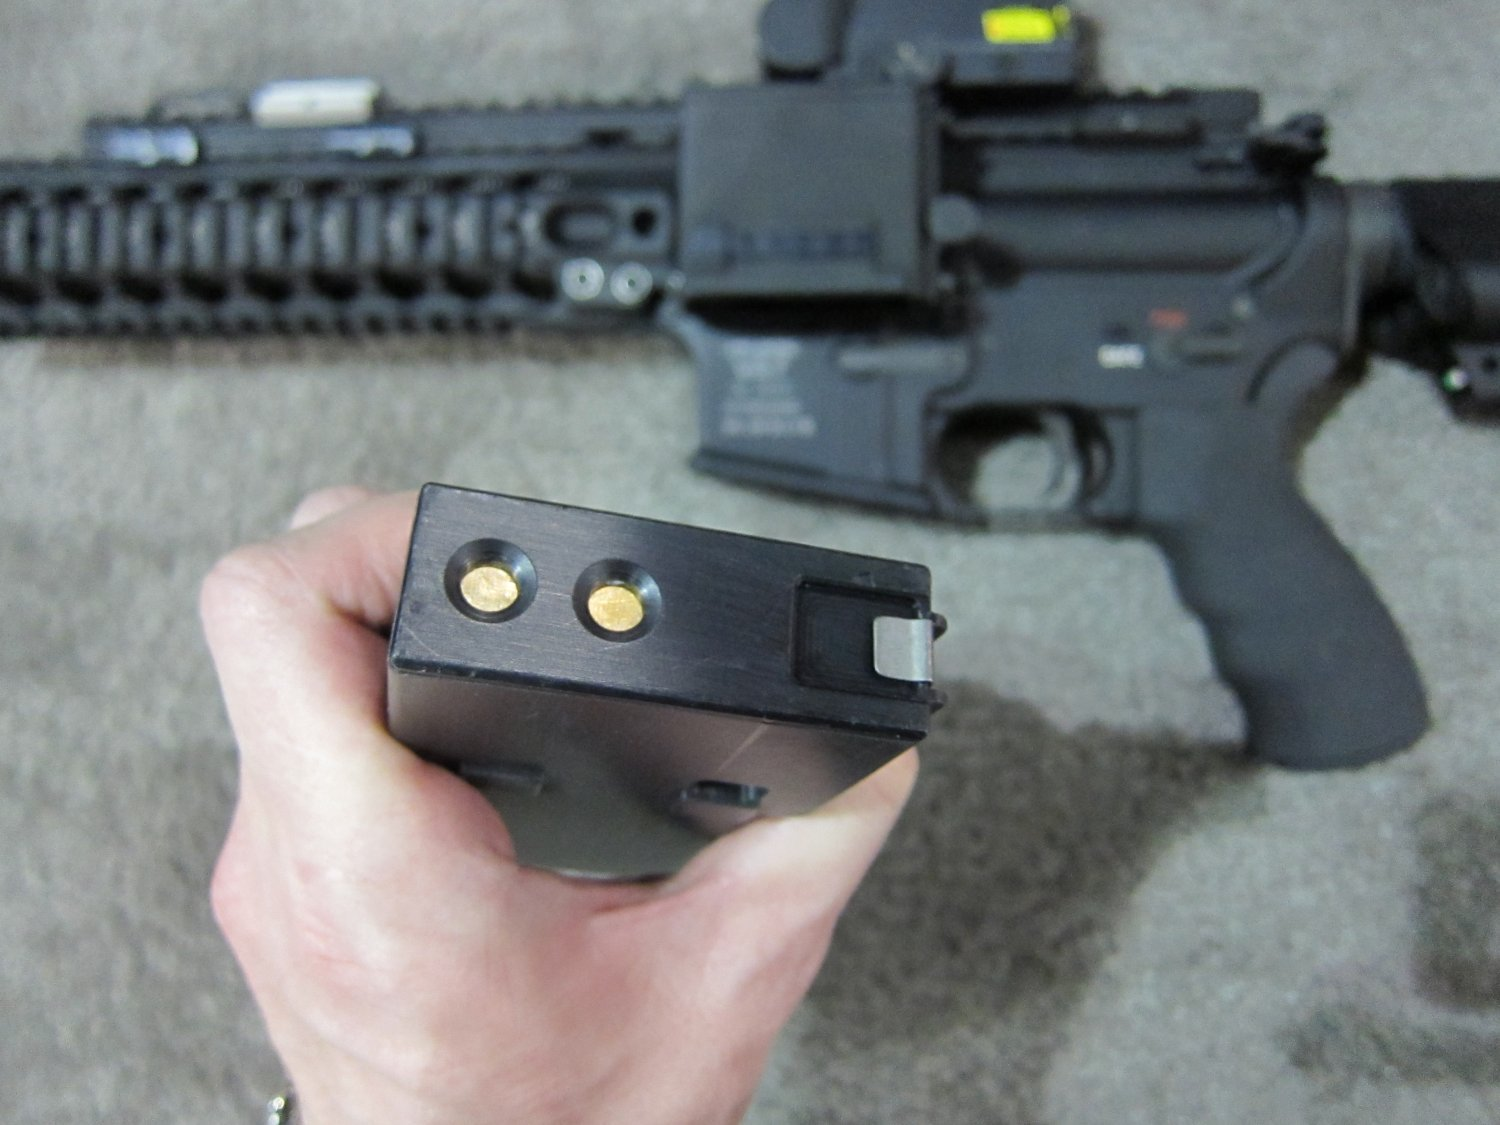 Reset RIPR Rifle Integrated Power Rail 8 <!  :en  >Reset RIPR (Rifle Integrated Power Rail): Central Power Source for Tactical AR Rifle/Carbine/SBR Accessories<!  :  >